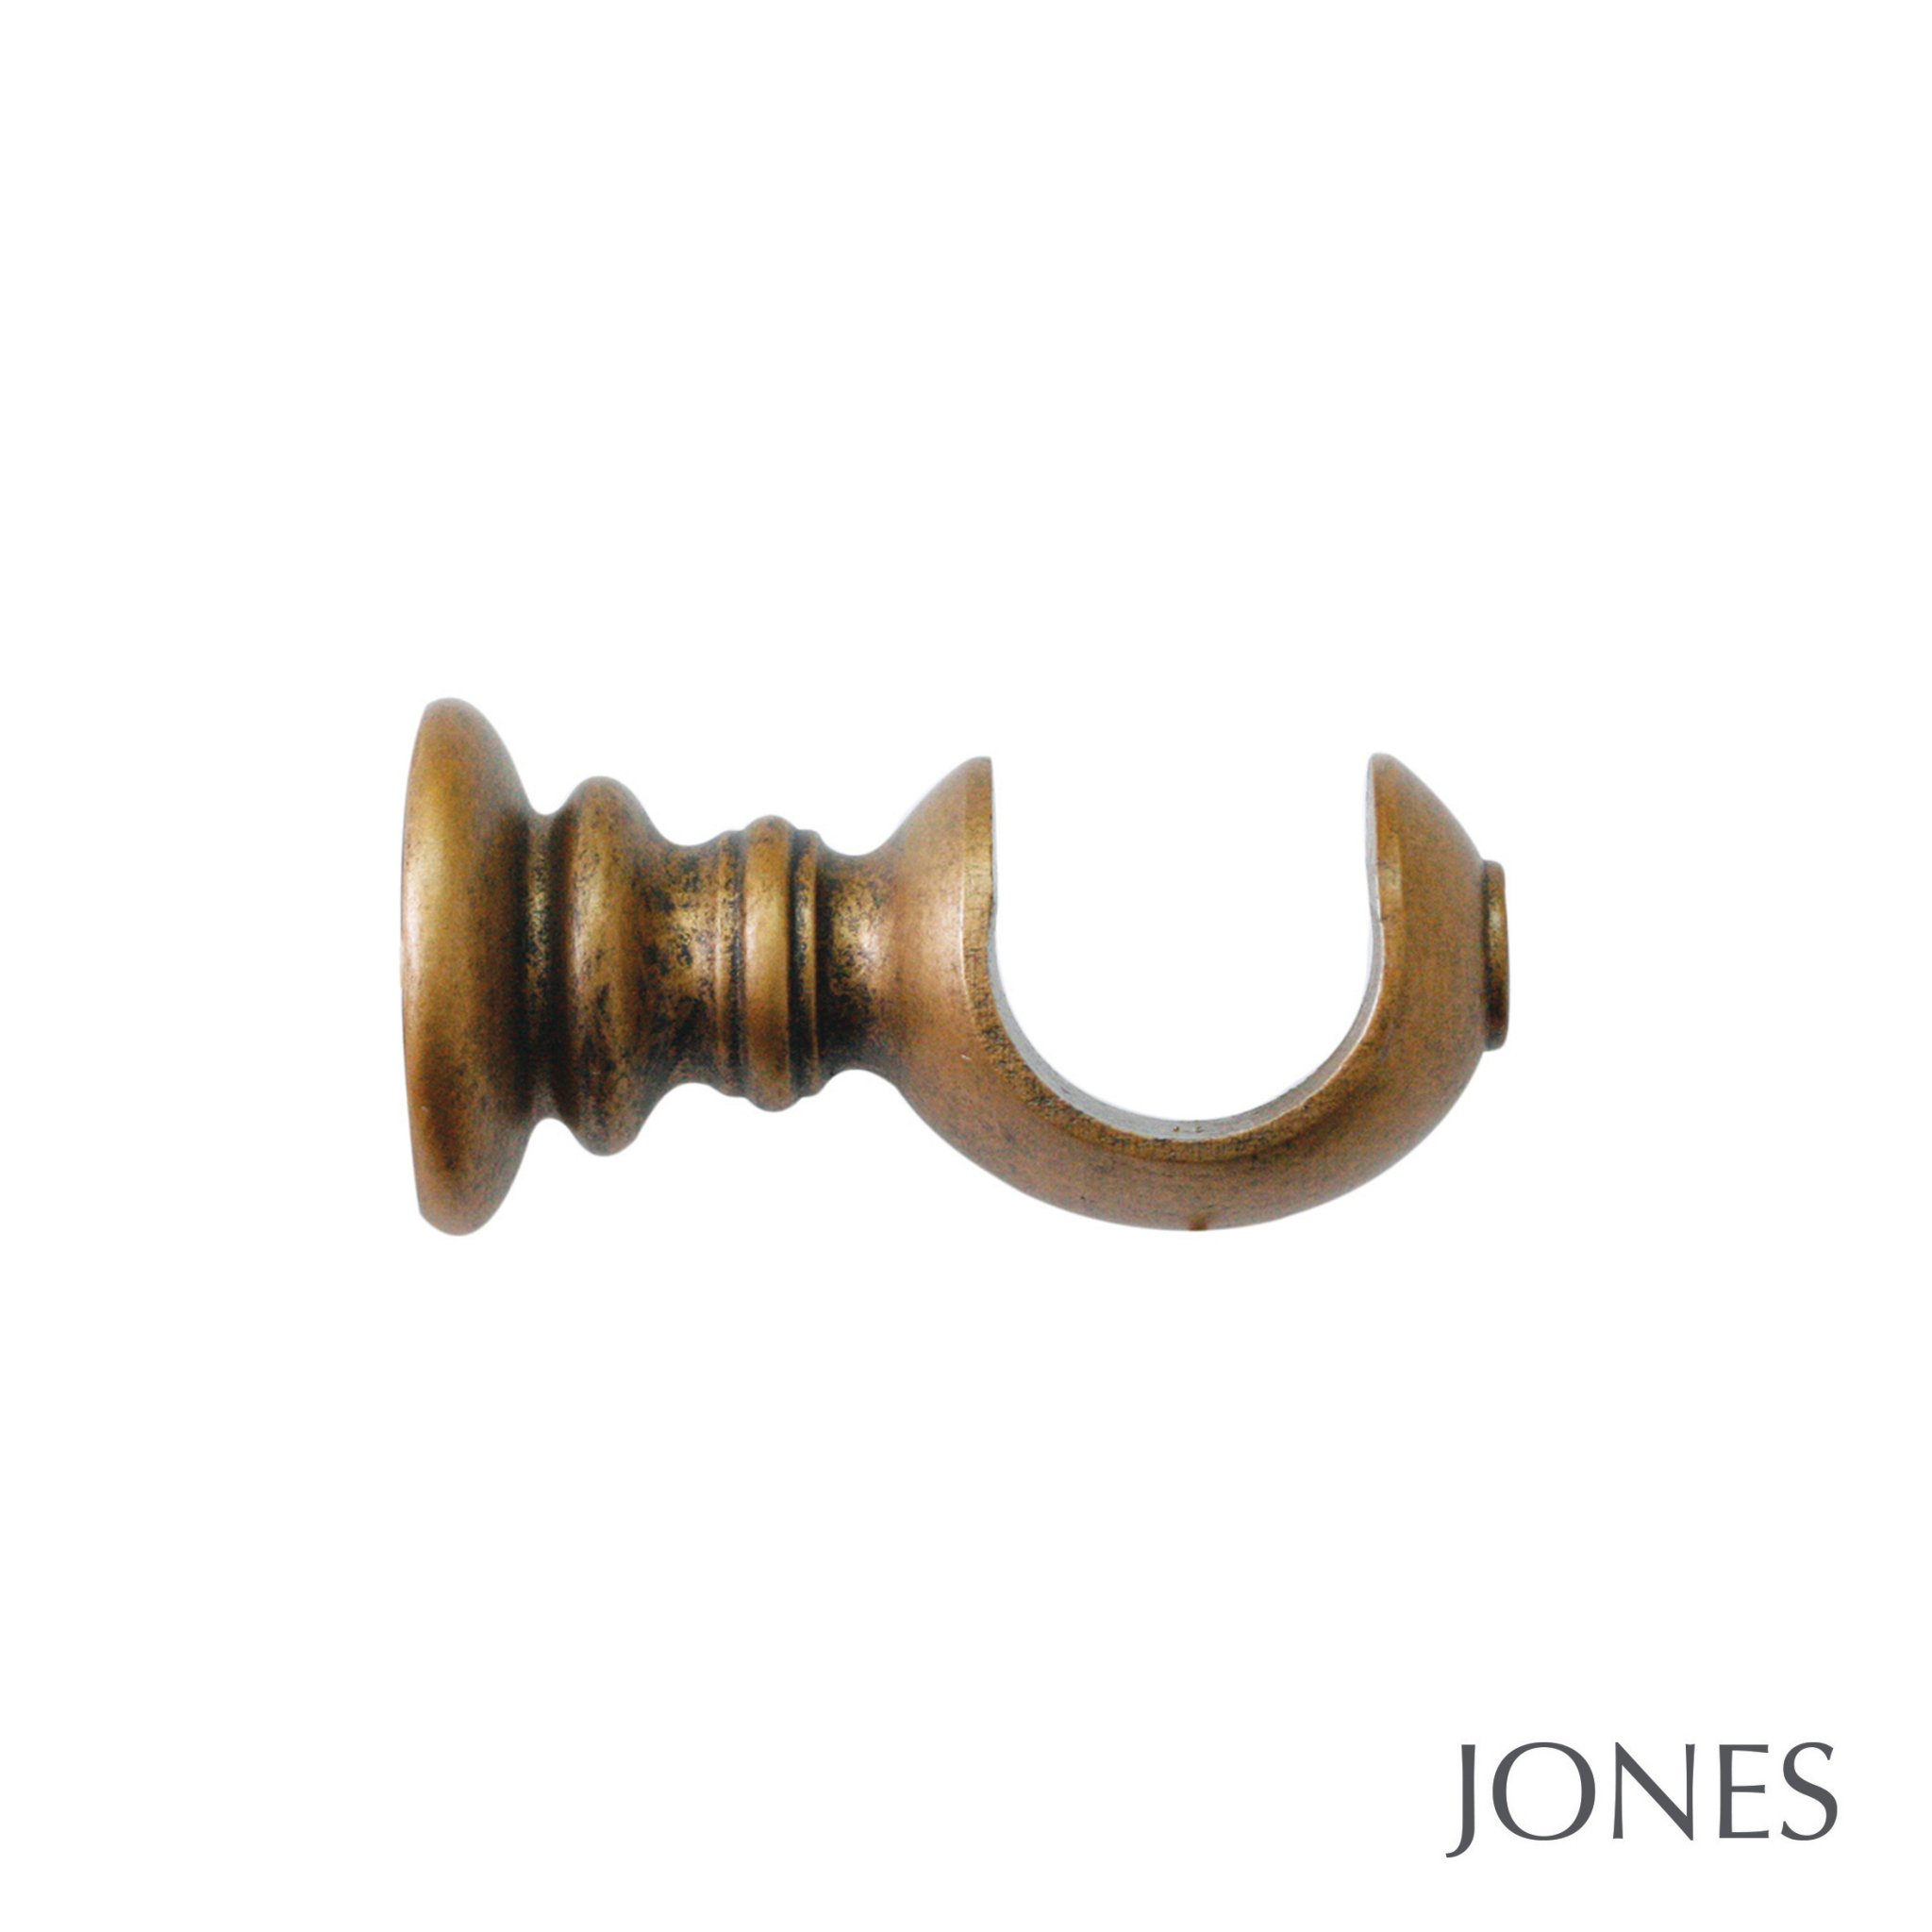 Jones Florentine Handcrafted 50mm Brackets